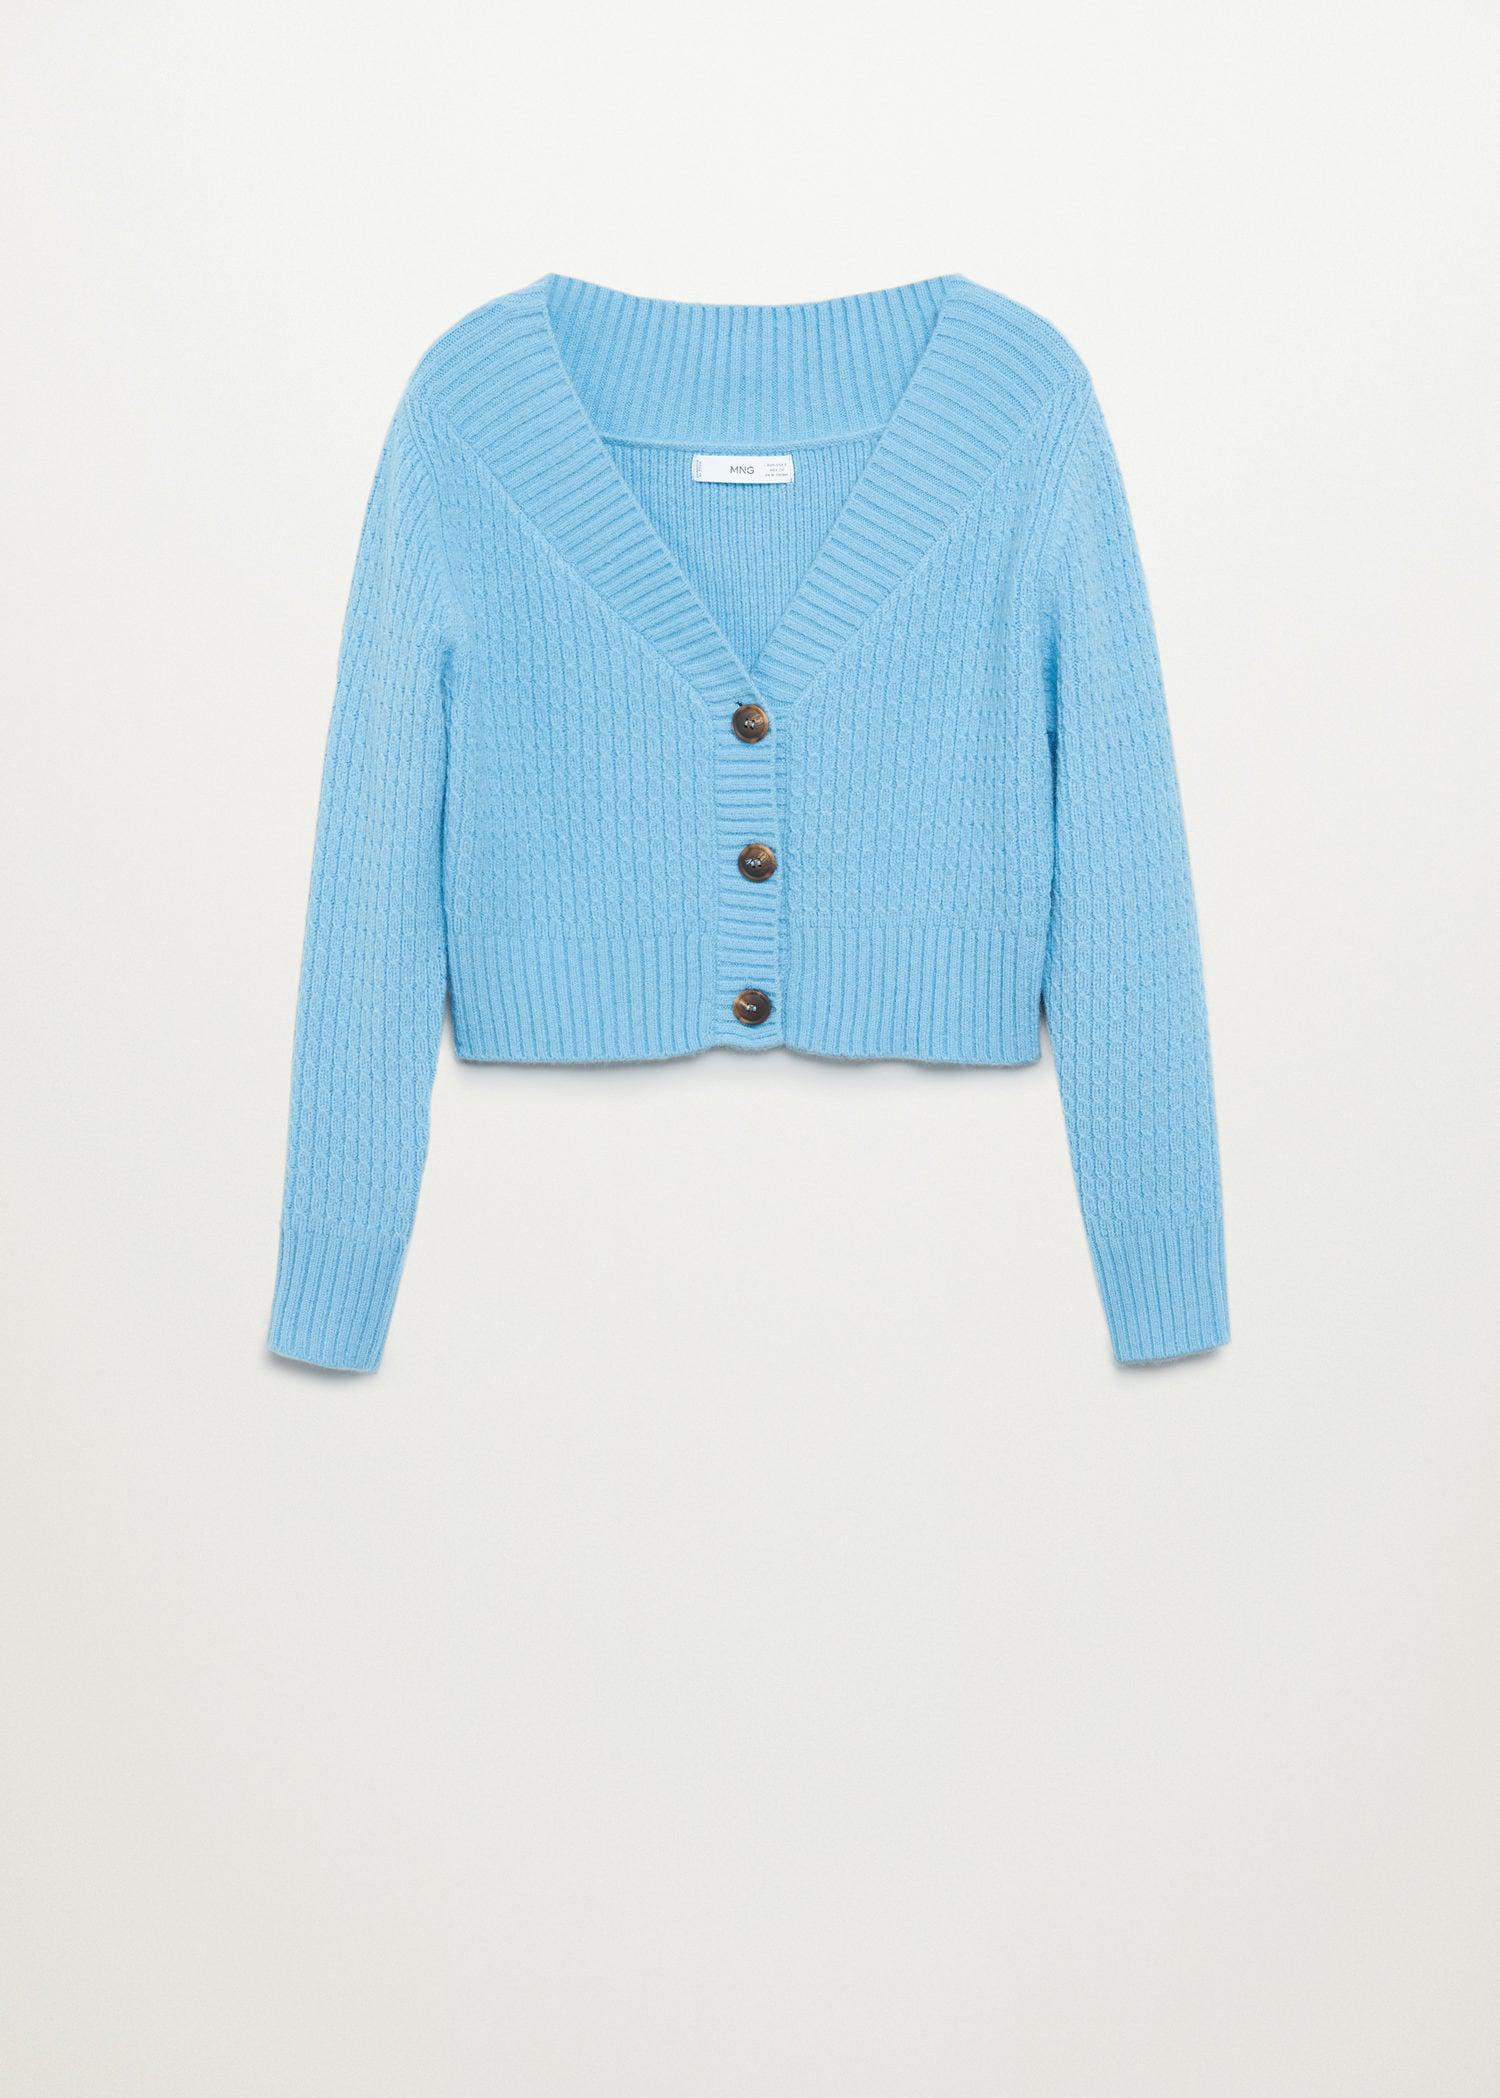 Cropped cardigan with buttons 7